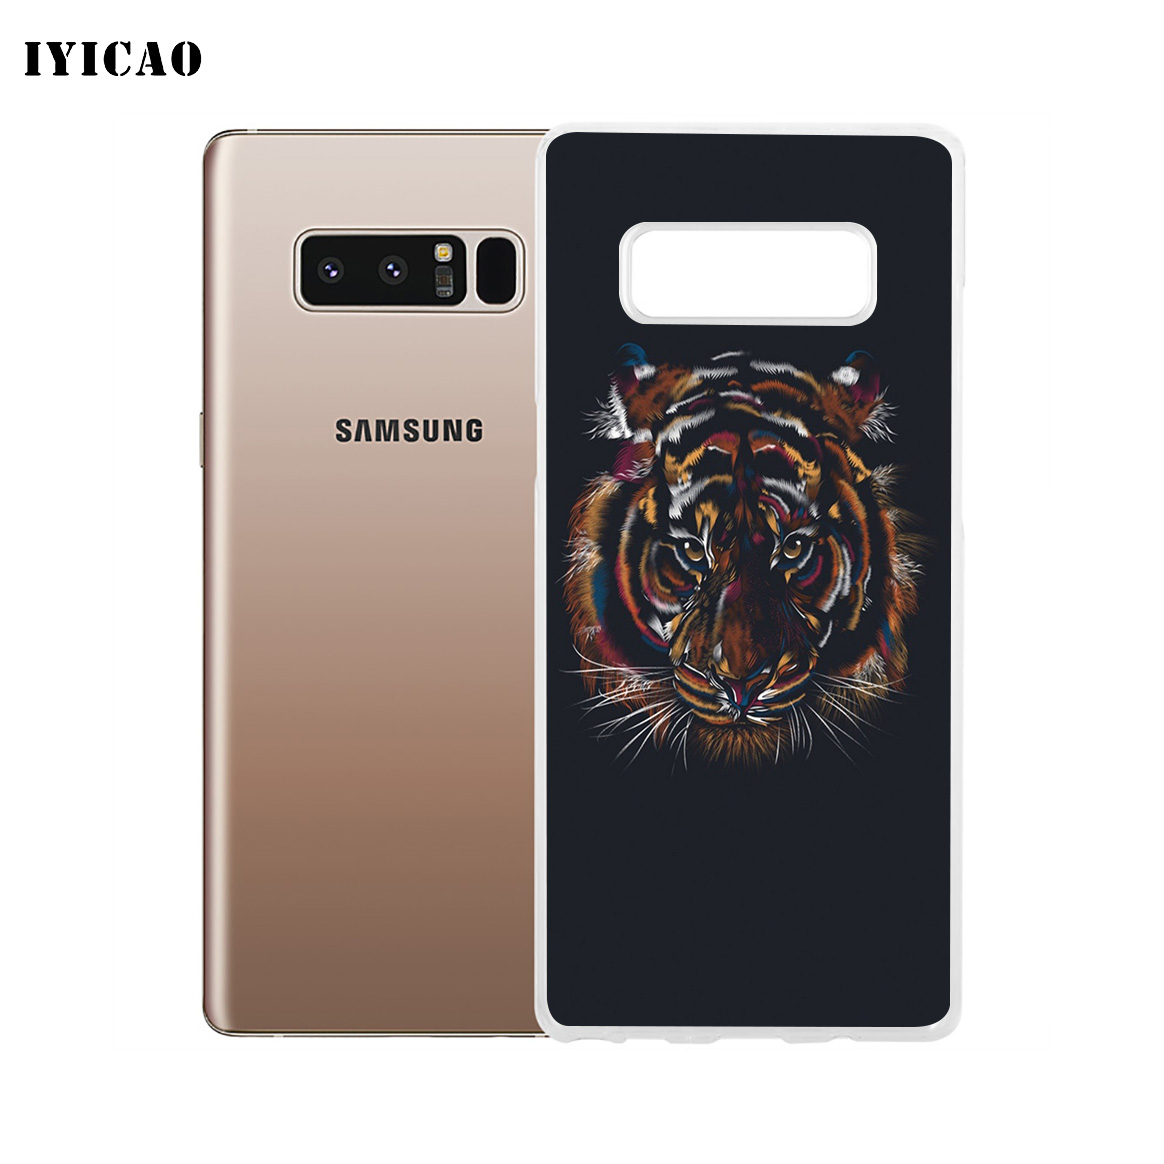 IYICAO Cool neon tiger Soft Silicone Phone Case for Samsung A5 A6 A6 Plus  A7 A8 A9 J3 J5 J7 Note 8 9 TPU Cover